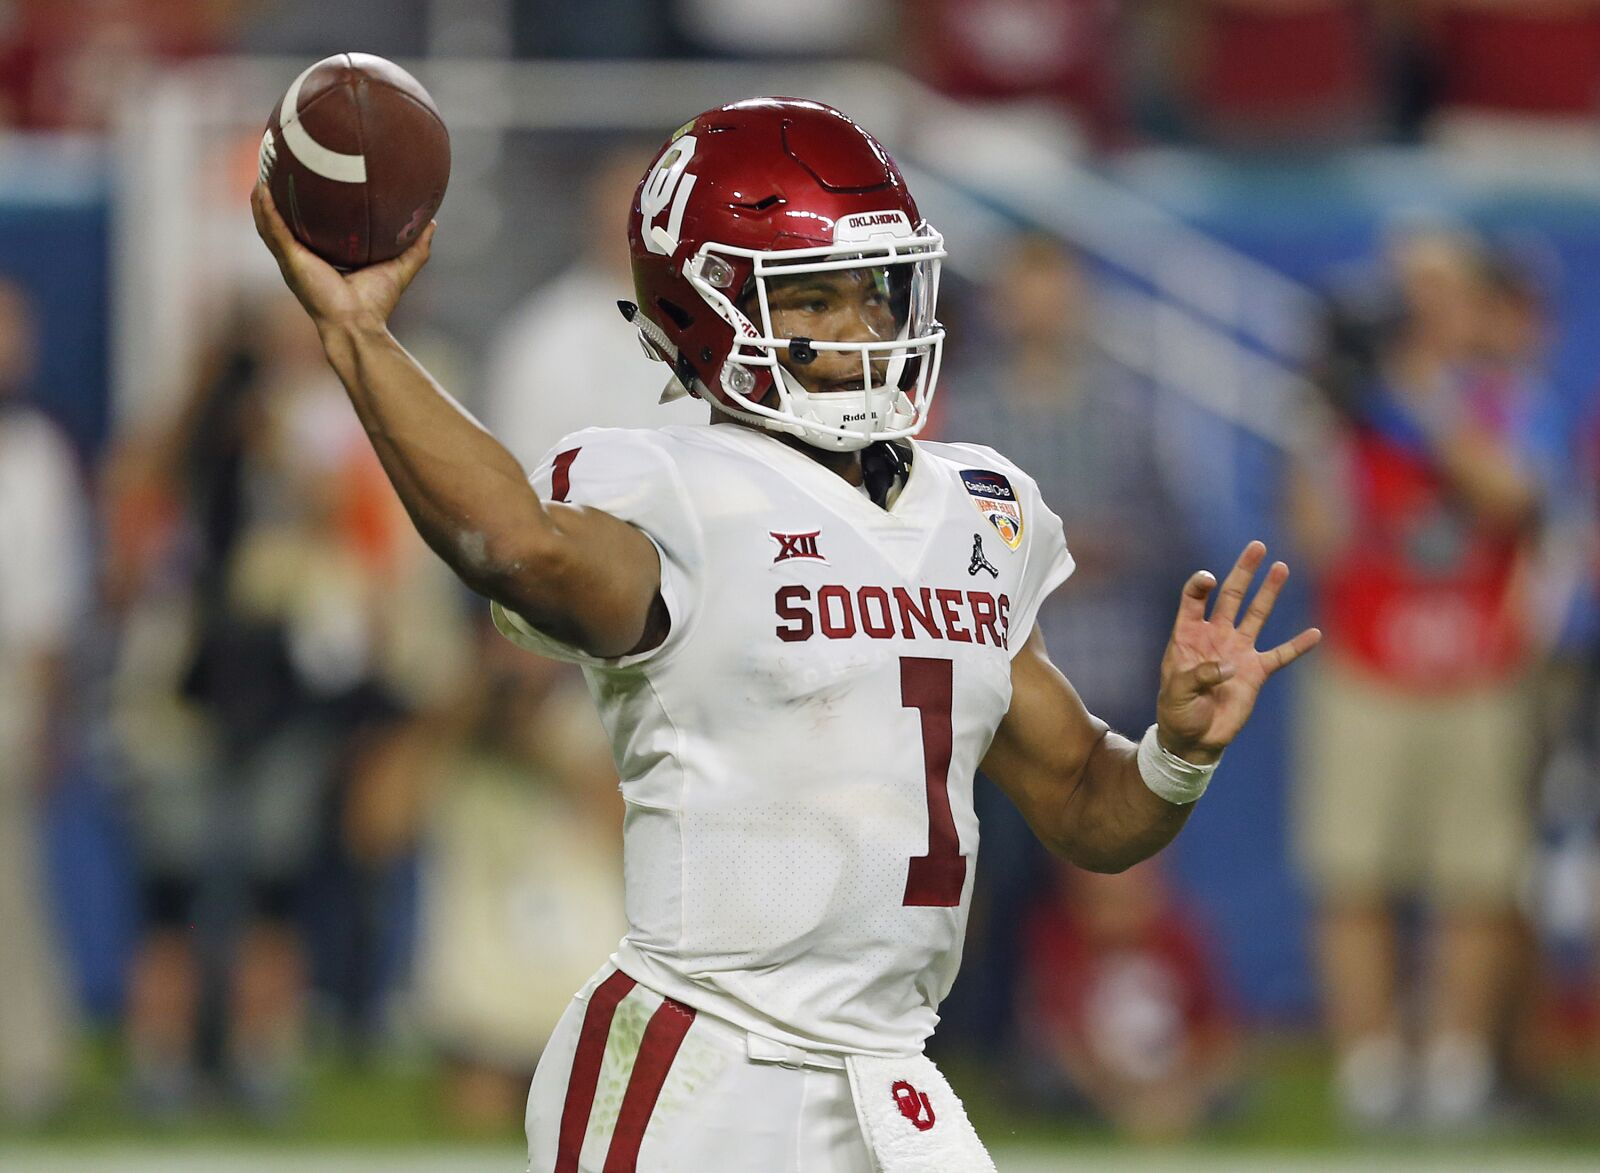 2019 NFL mock draft: Kyler Murray lands with Redskins